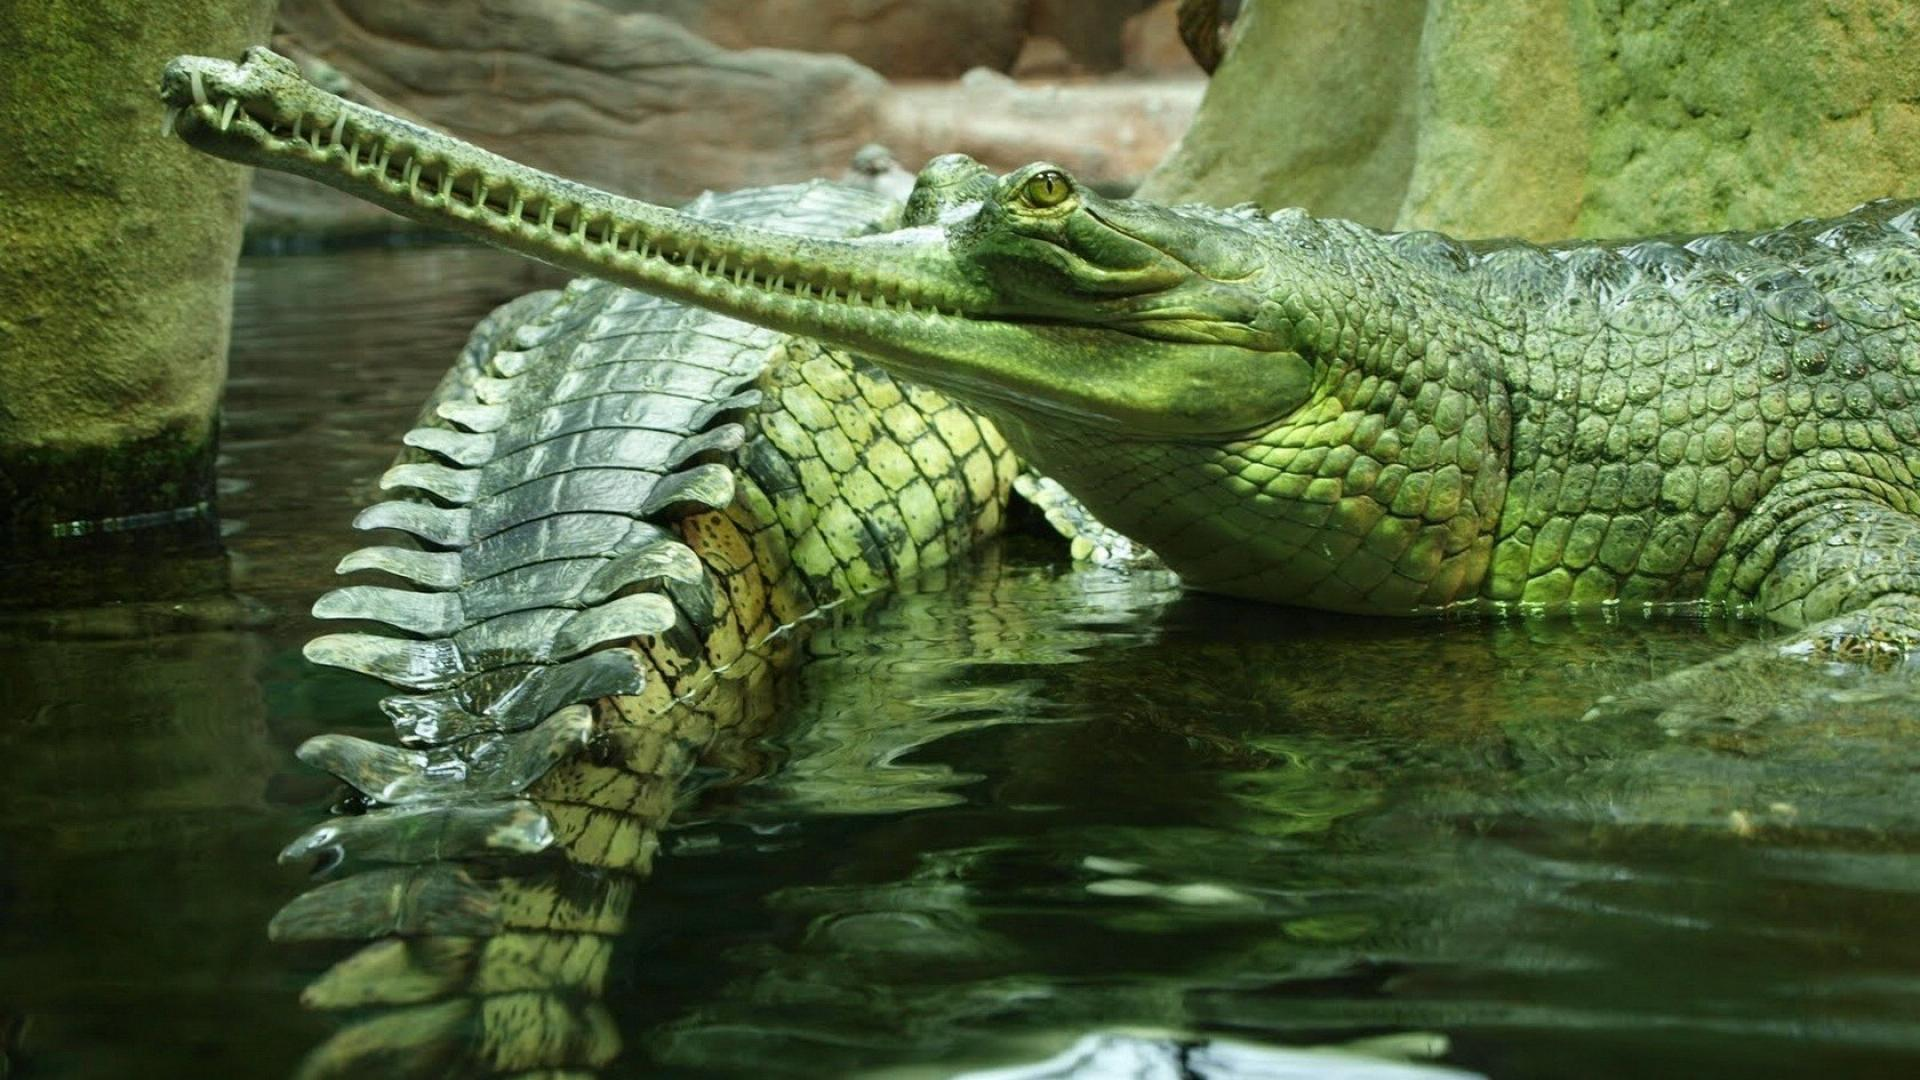 pictures of the biggest crocodile